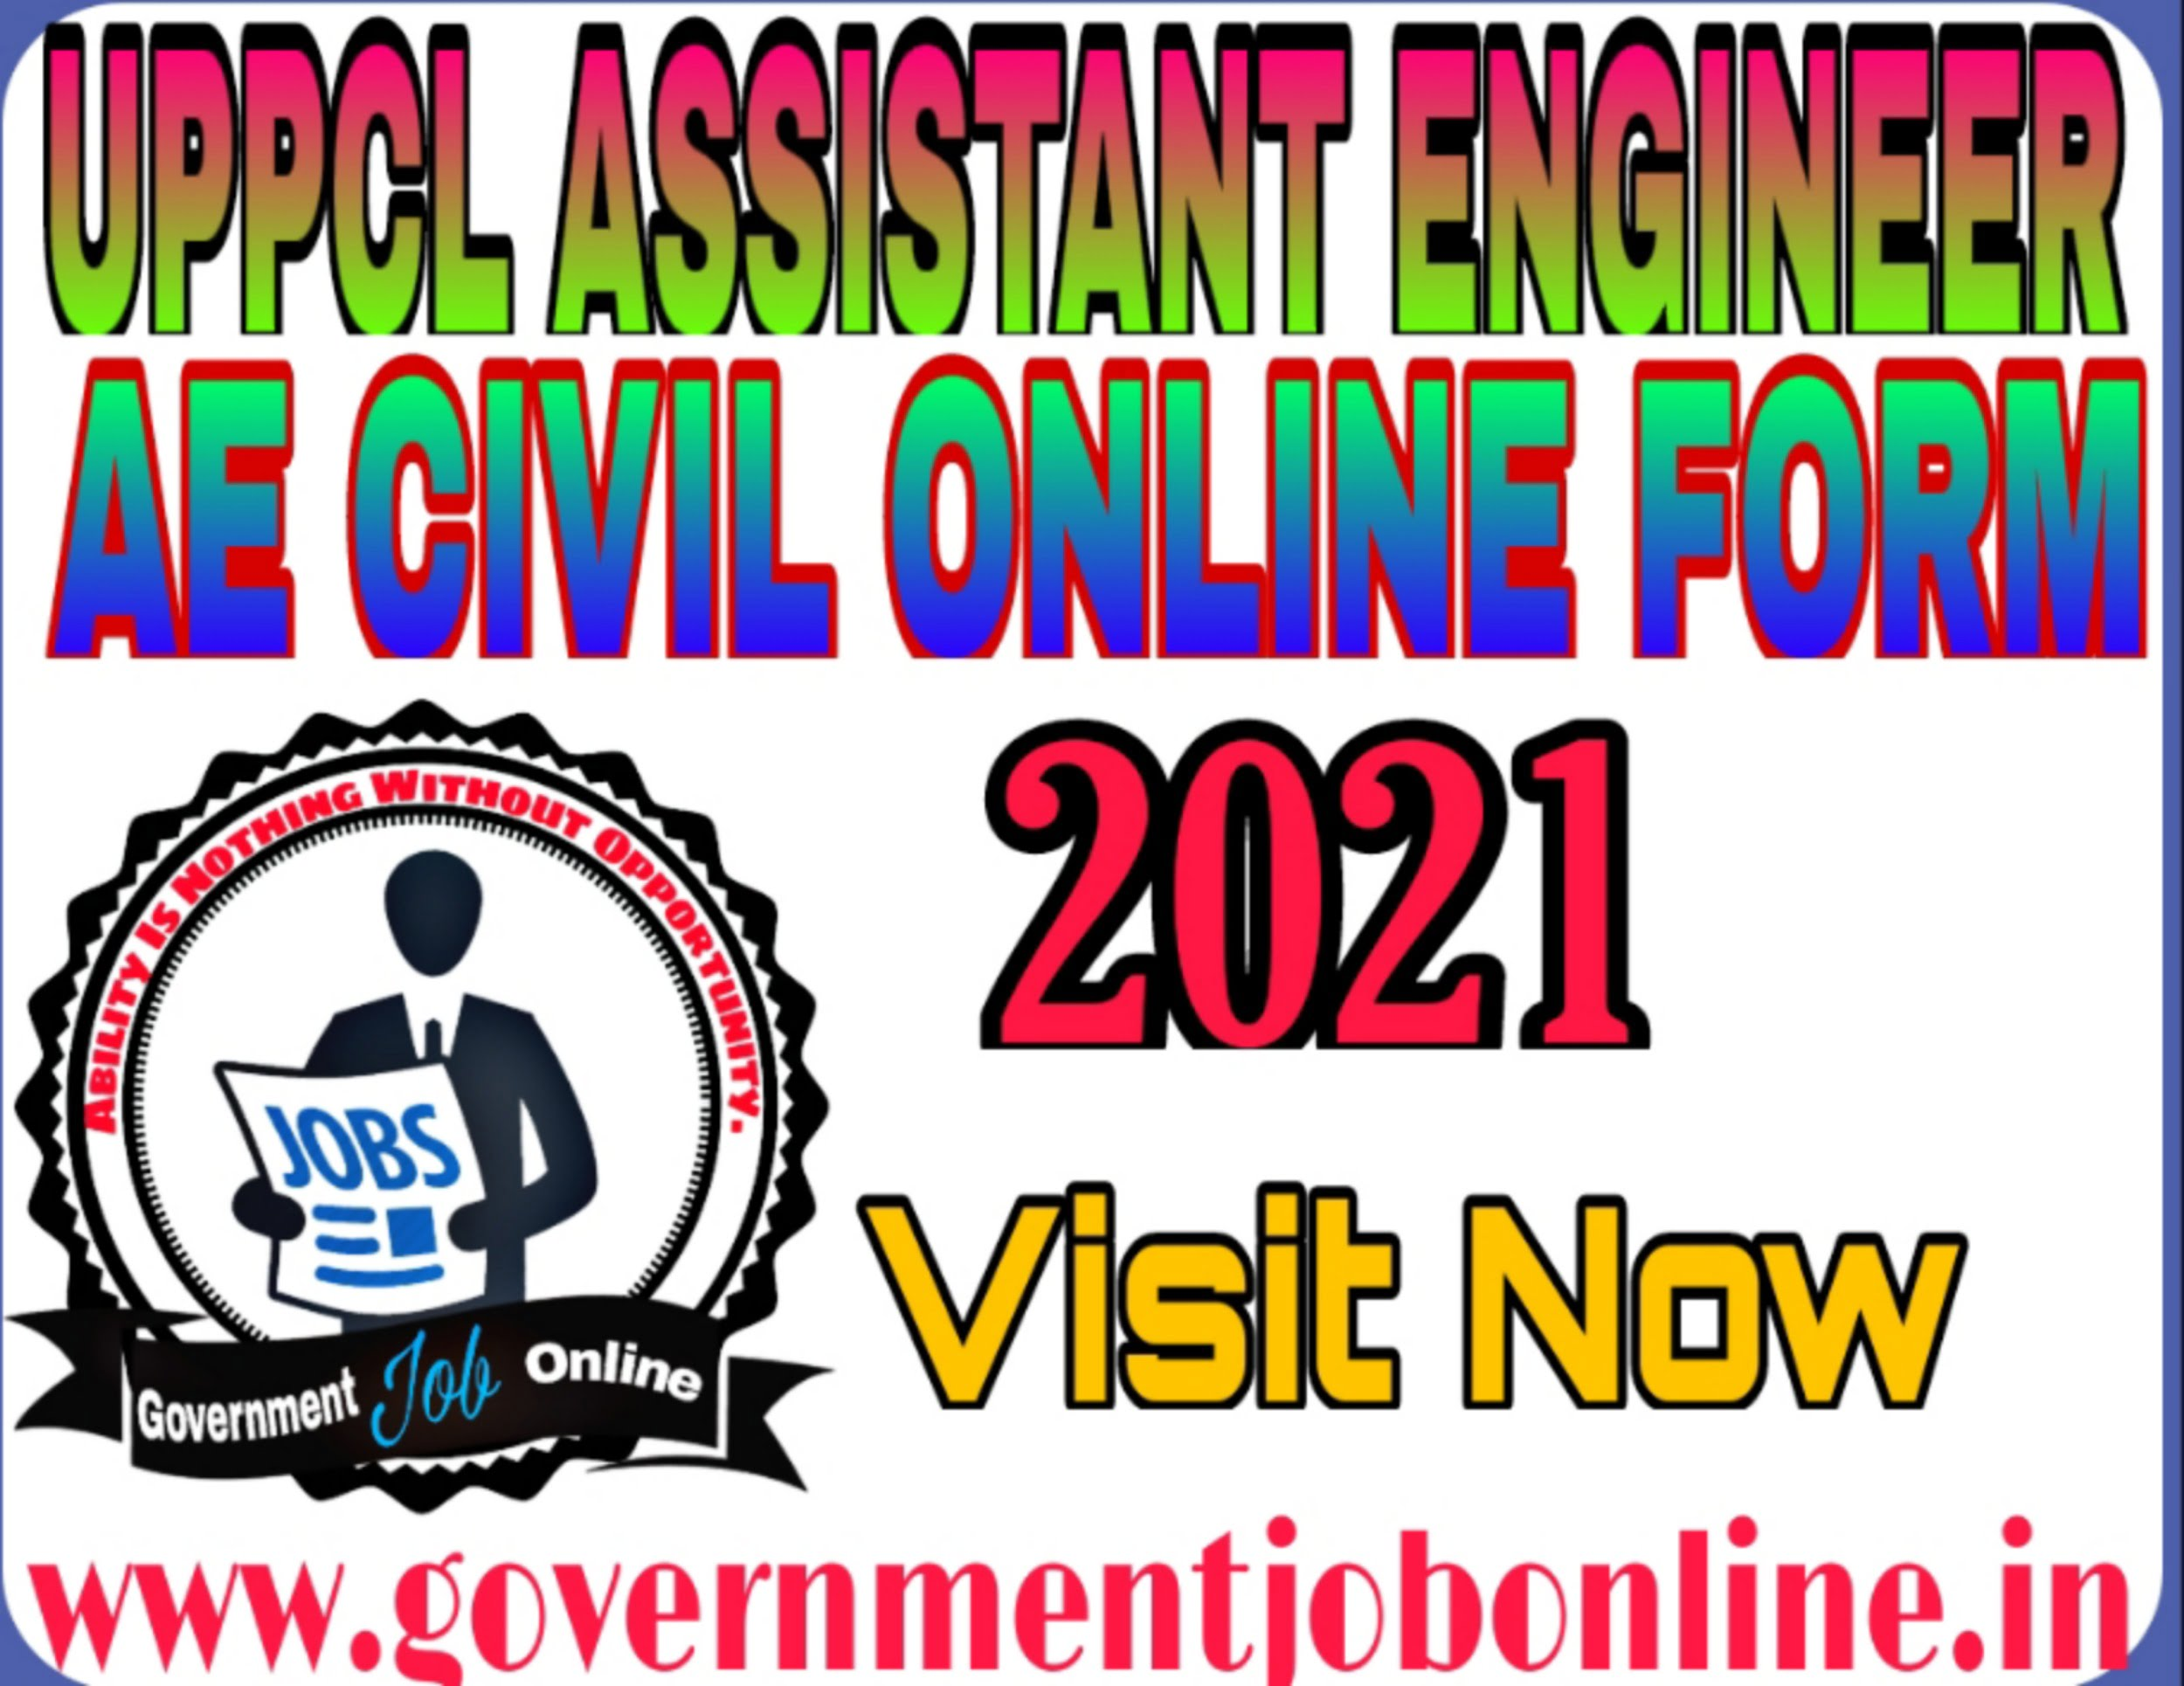 UPPCL Assistant Engineer AE Civil Online Form 2021